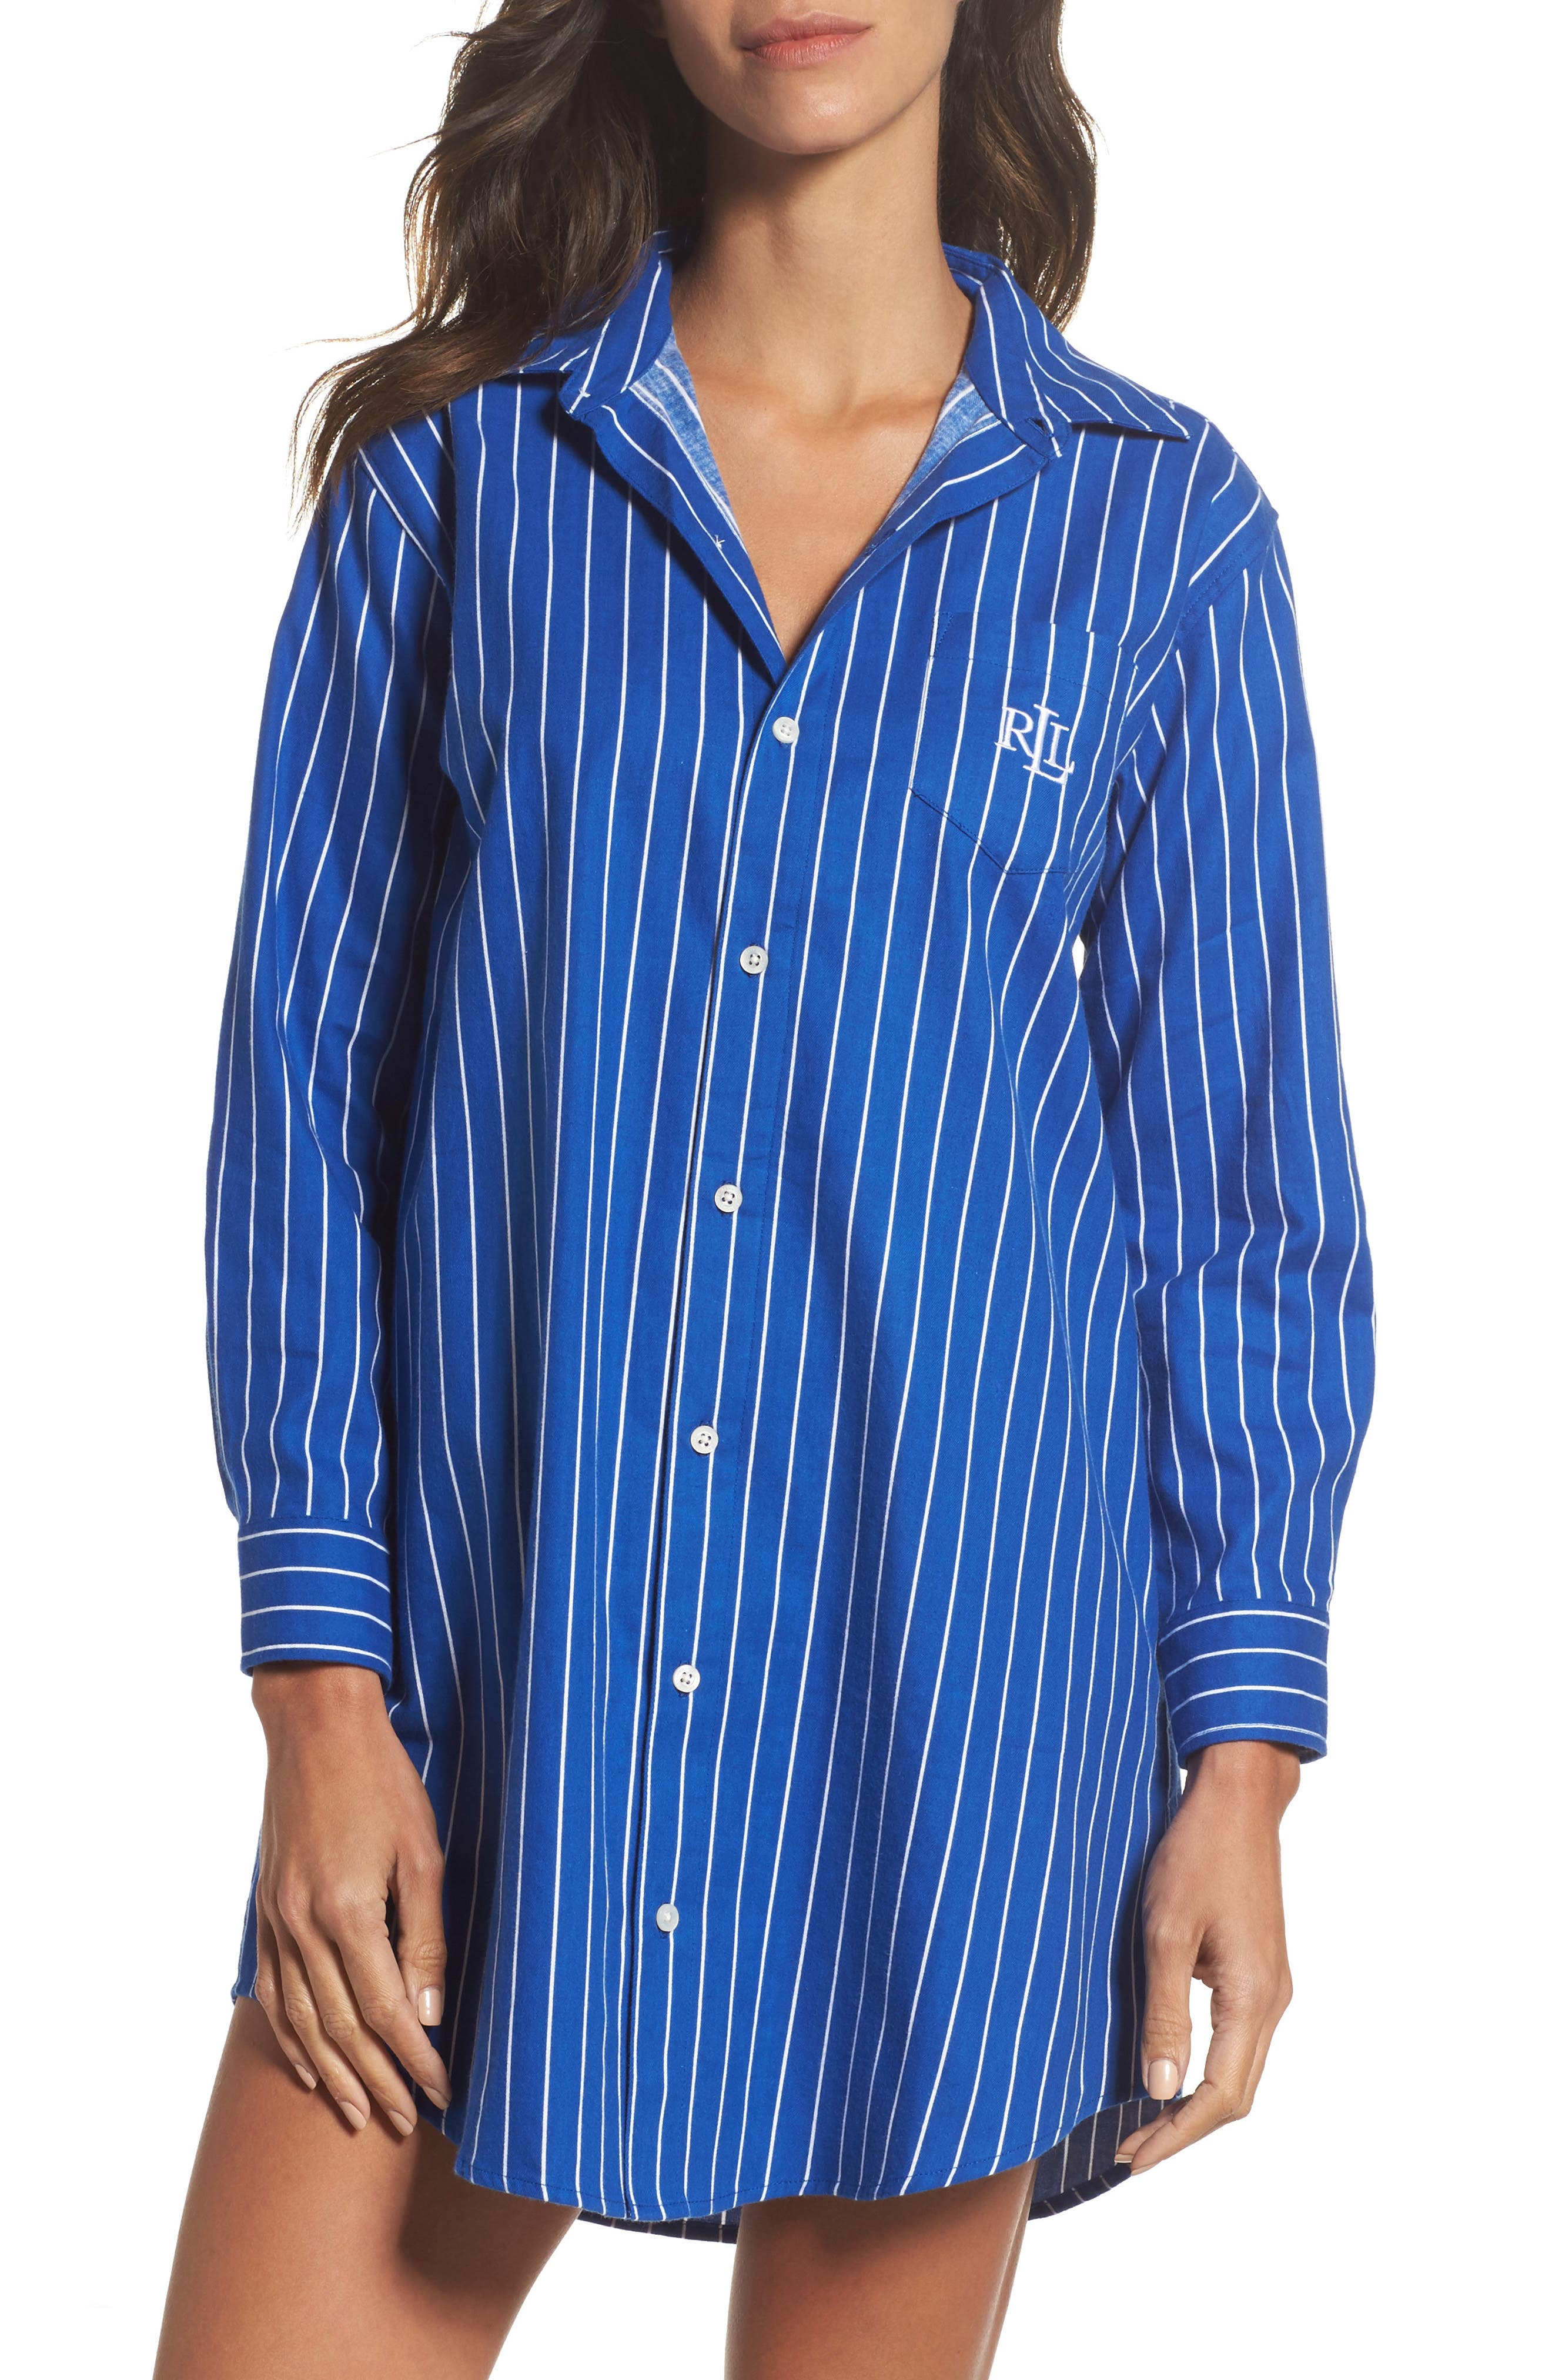 Lauren Ralph Lauren Sleep Shirt